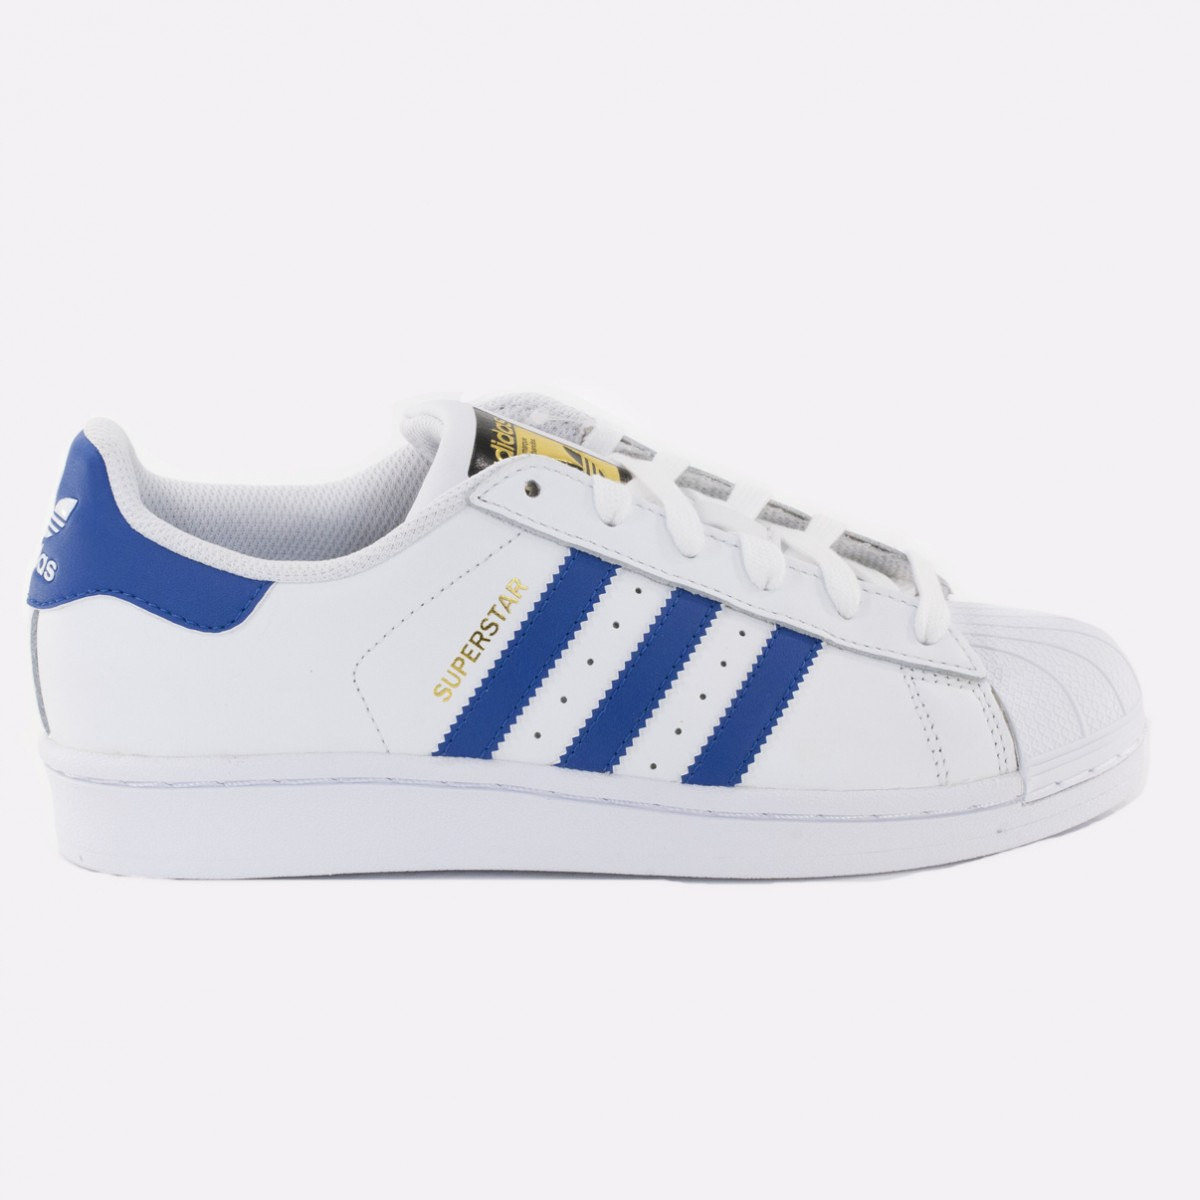 Star Adidas Super Shop Blue Online Stripes Strass Ray 3 Uq5q7